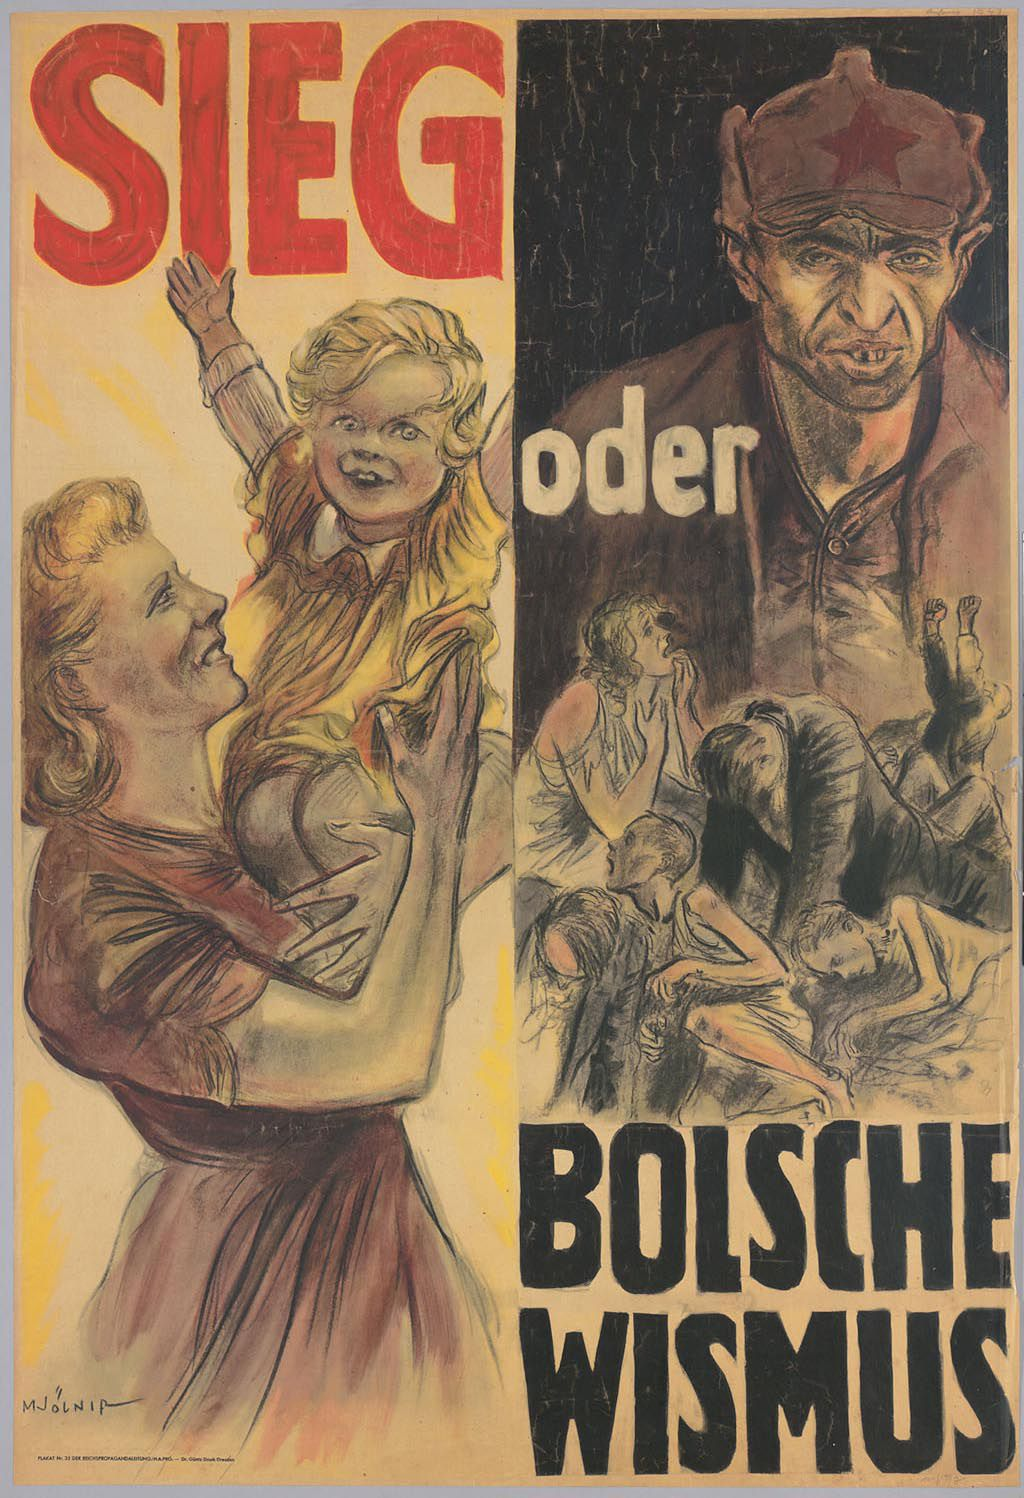 Anti-Bolshevist NSDAP homefront poster campaign from just after NSDAP military defeat, Stalingrad, 1943